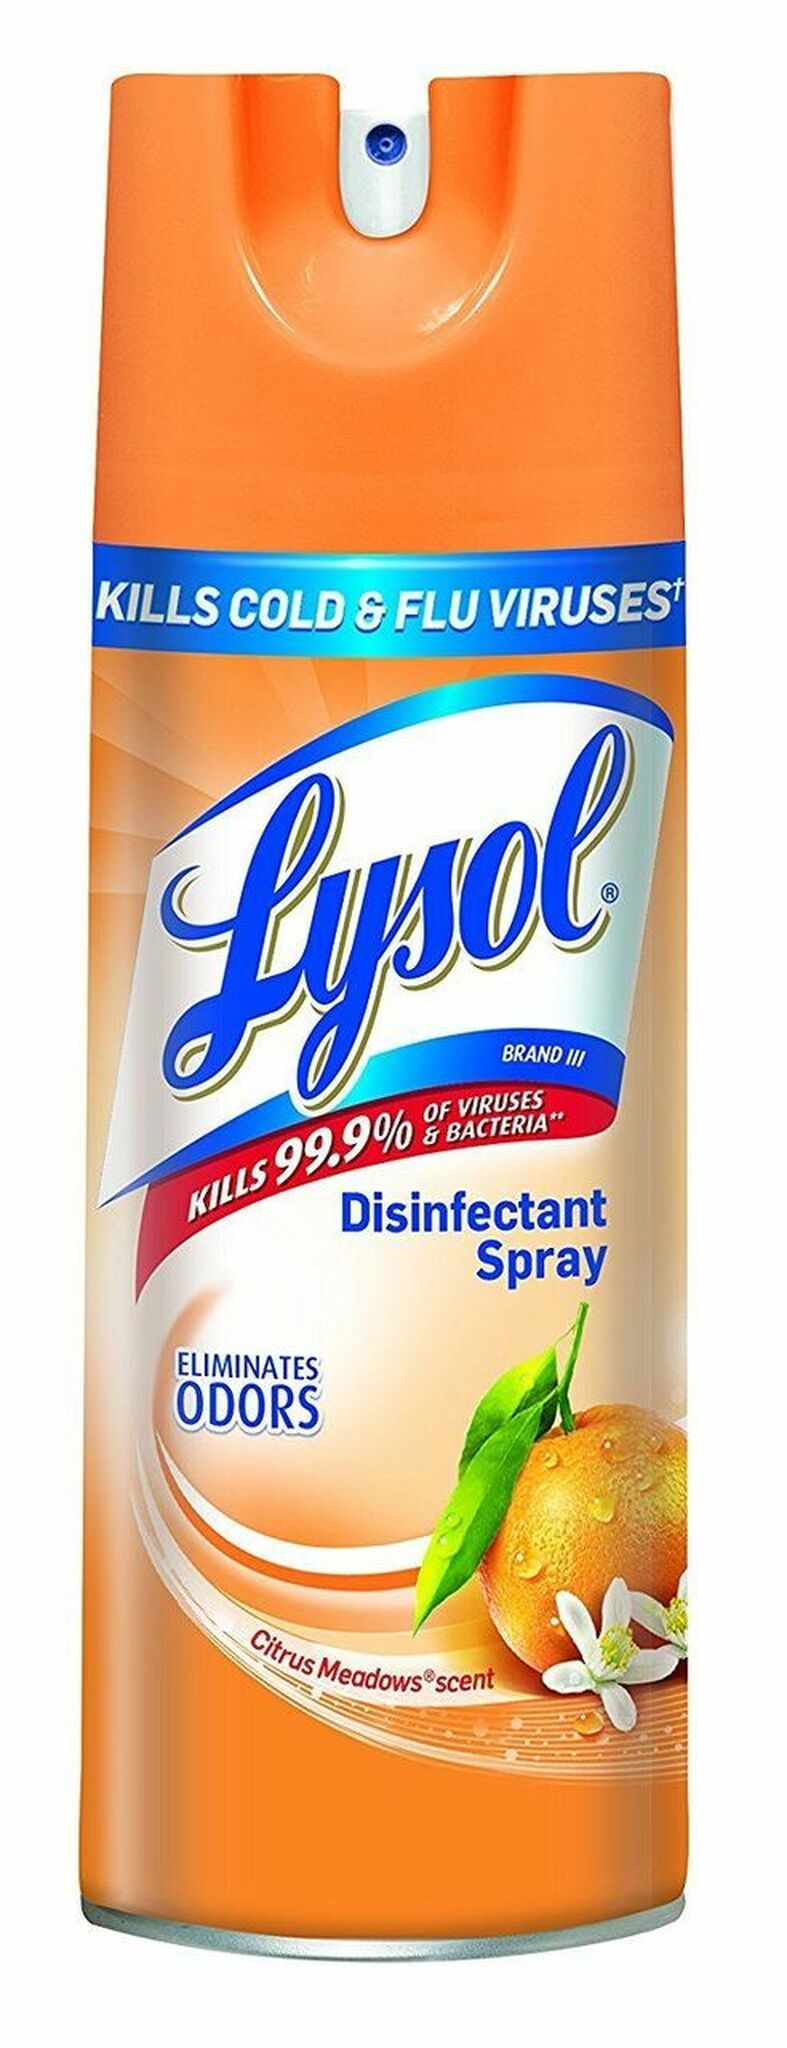 lysol disinfectant spray citrus meadows